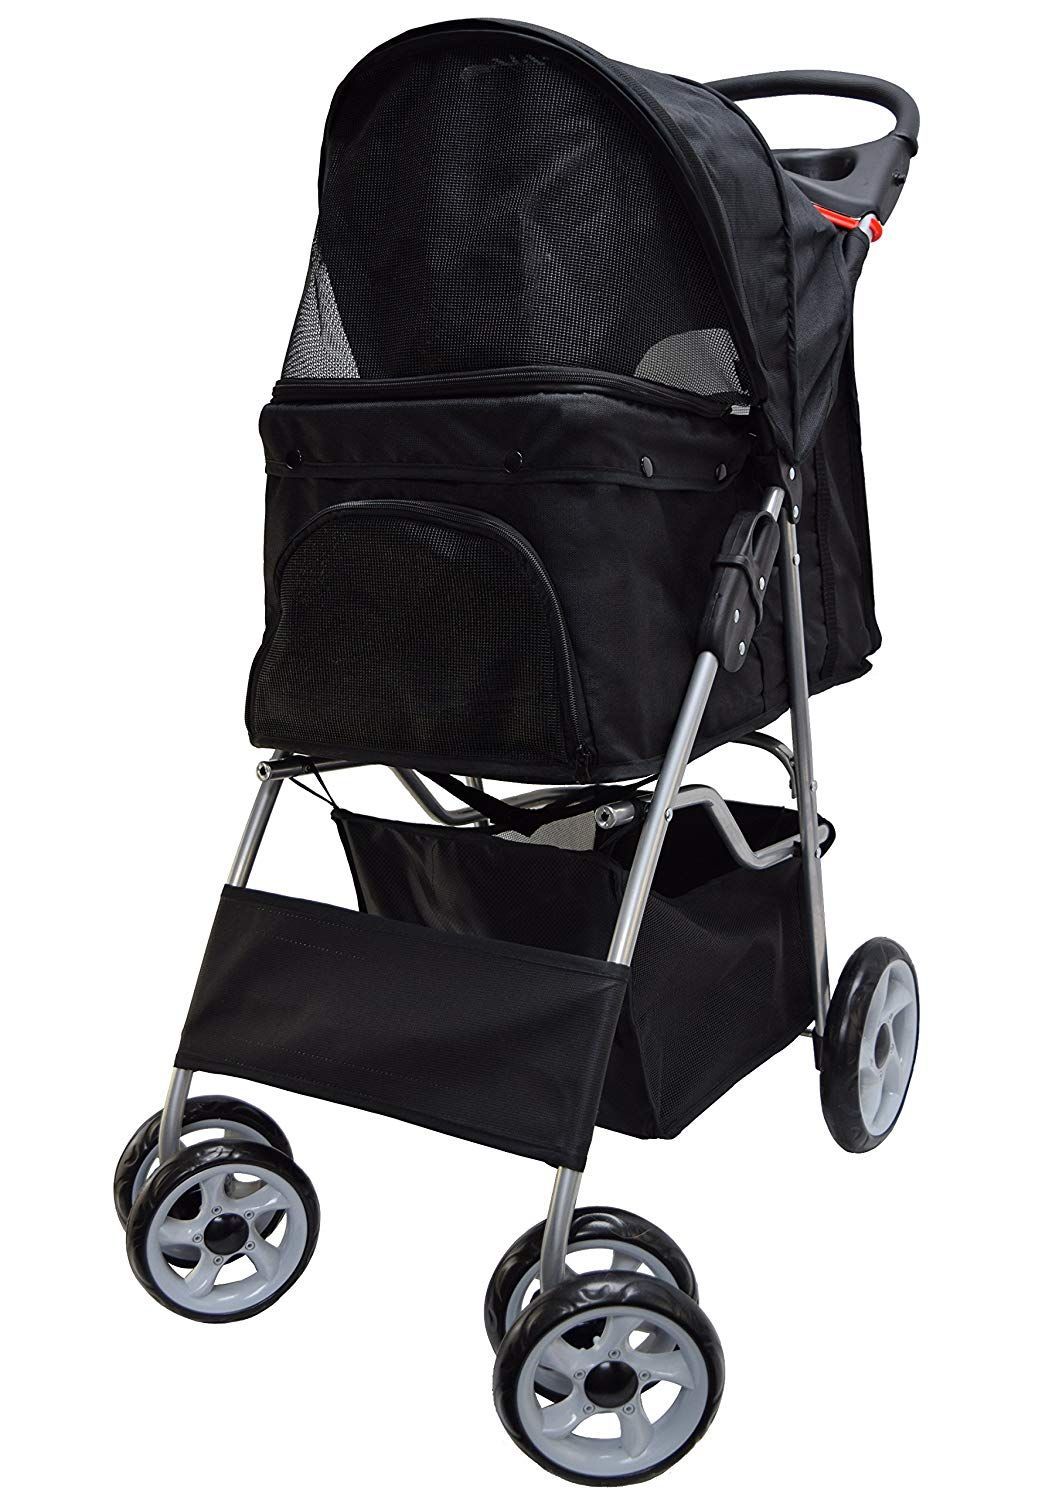 VIVO Four Wheel Pet Stroller, for Cat, Dog and More